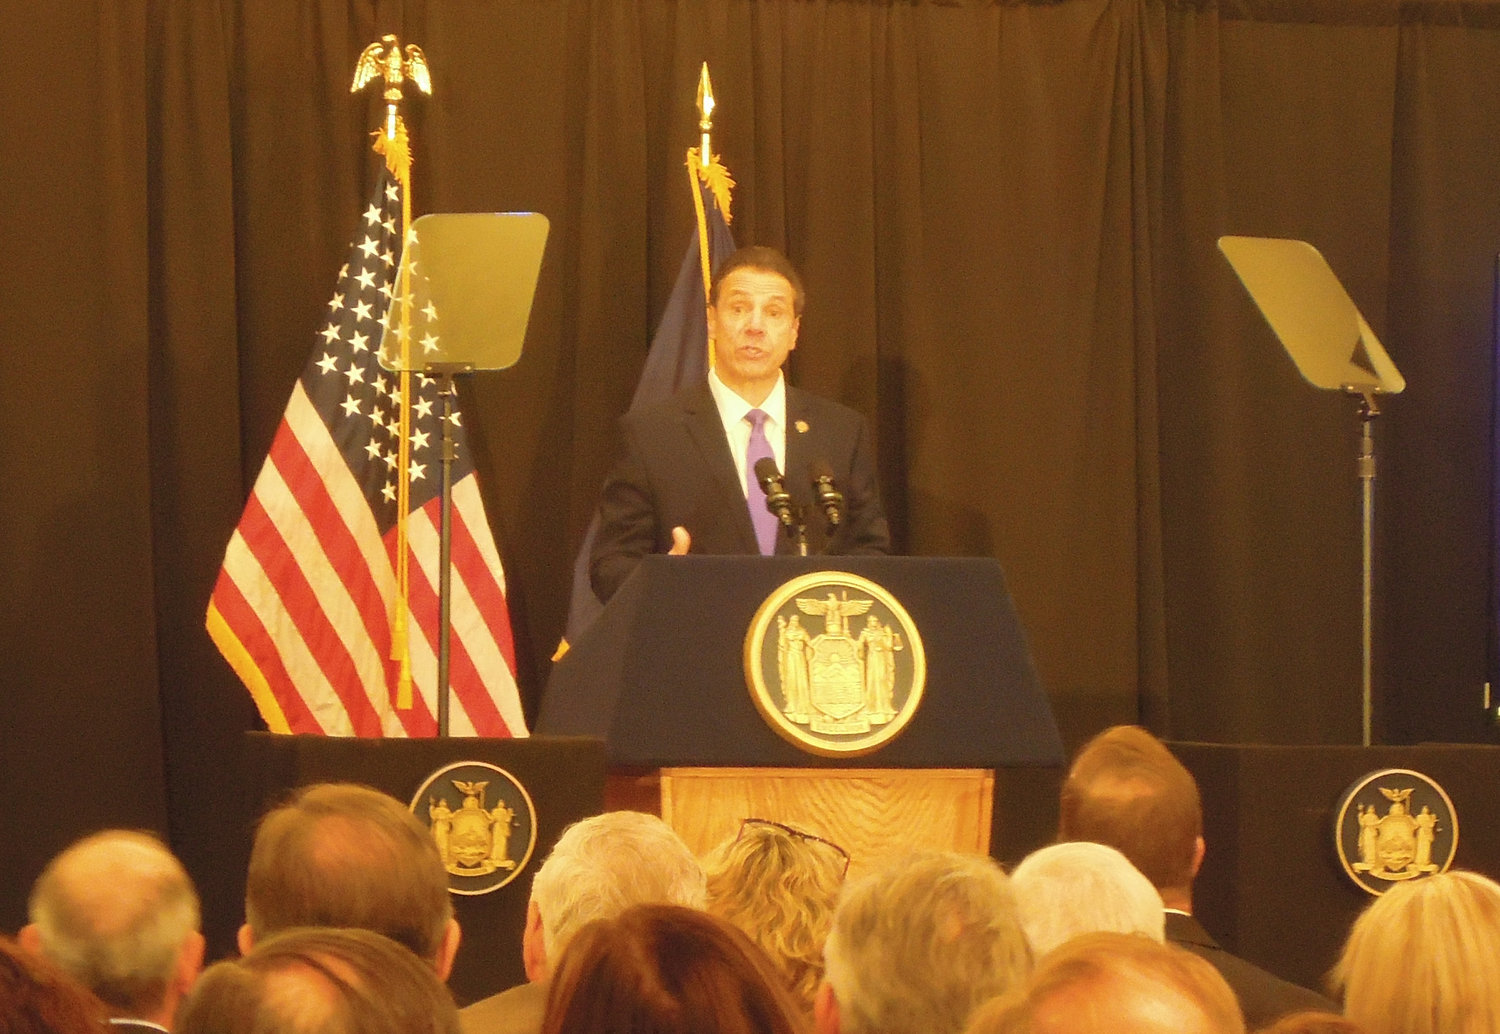 Gov. Andrew Cuomo stressed tax cuts in an address to the Long Island Association at the Crest Hollow Country Club on Feb. 8.